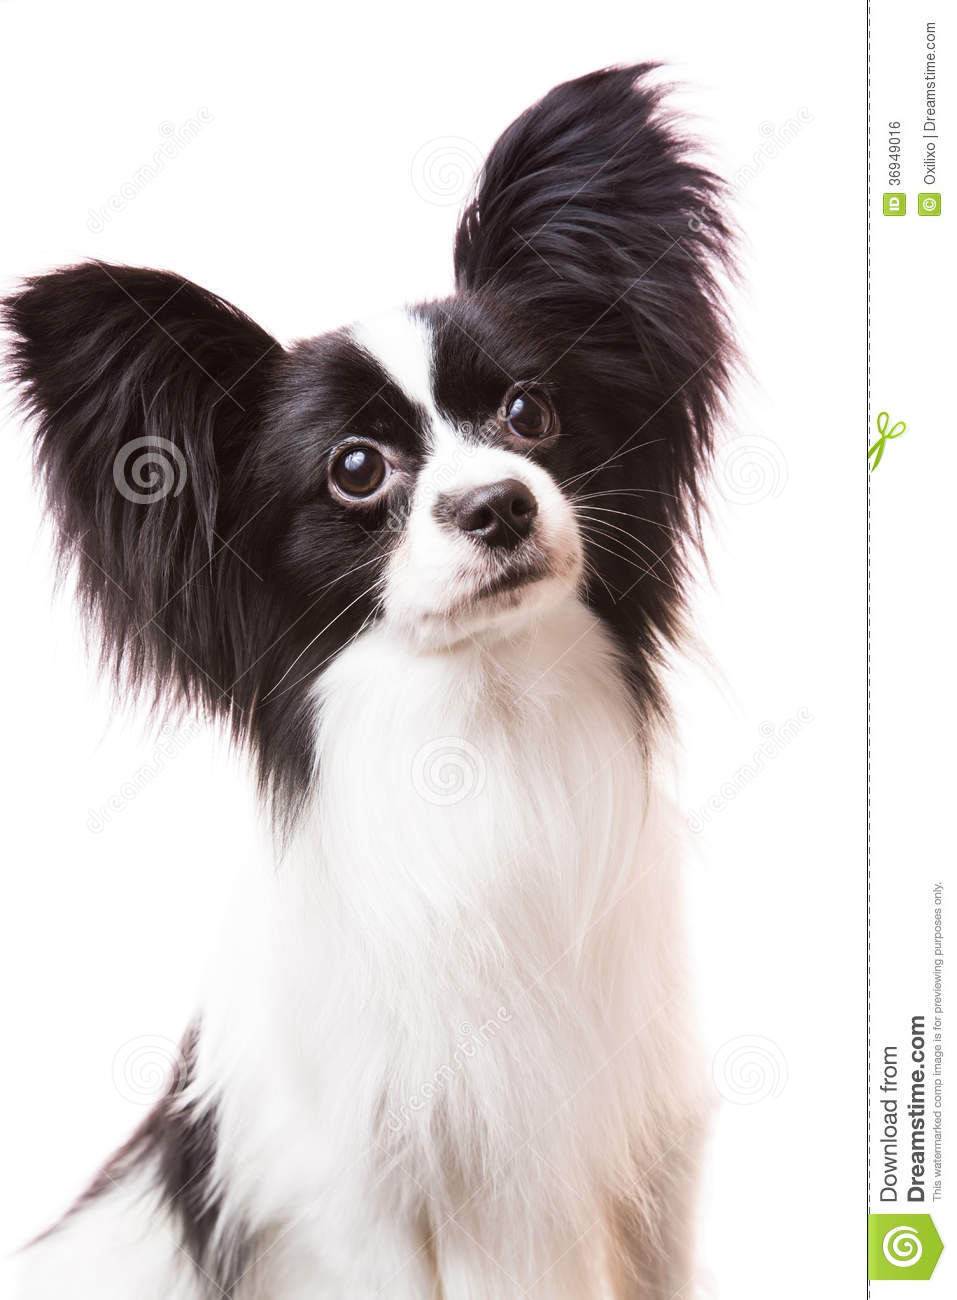 White And Black Dog With Big Snout Breed